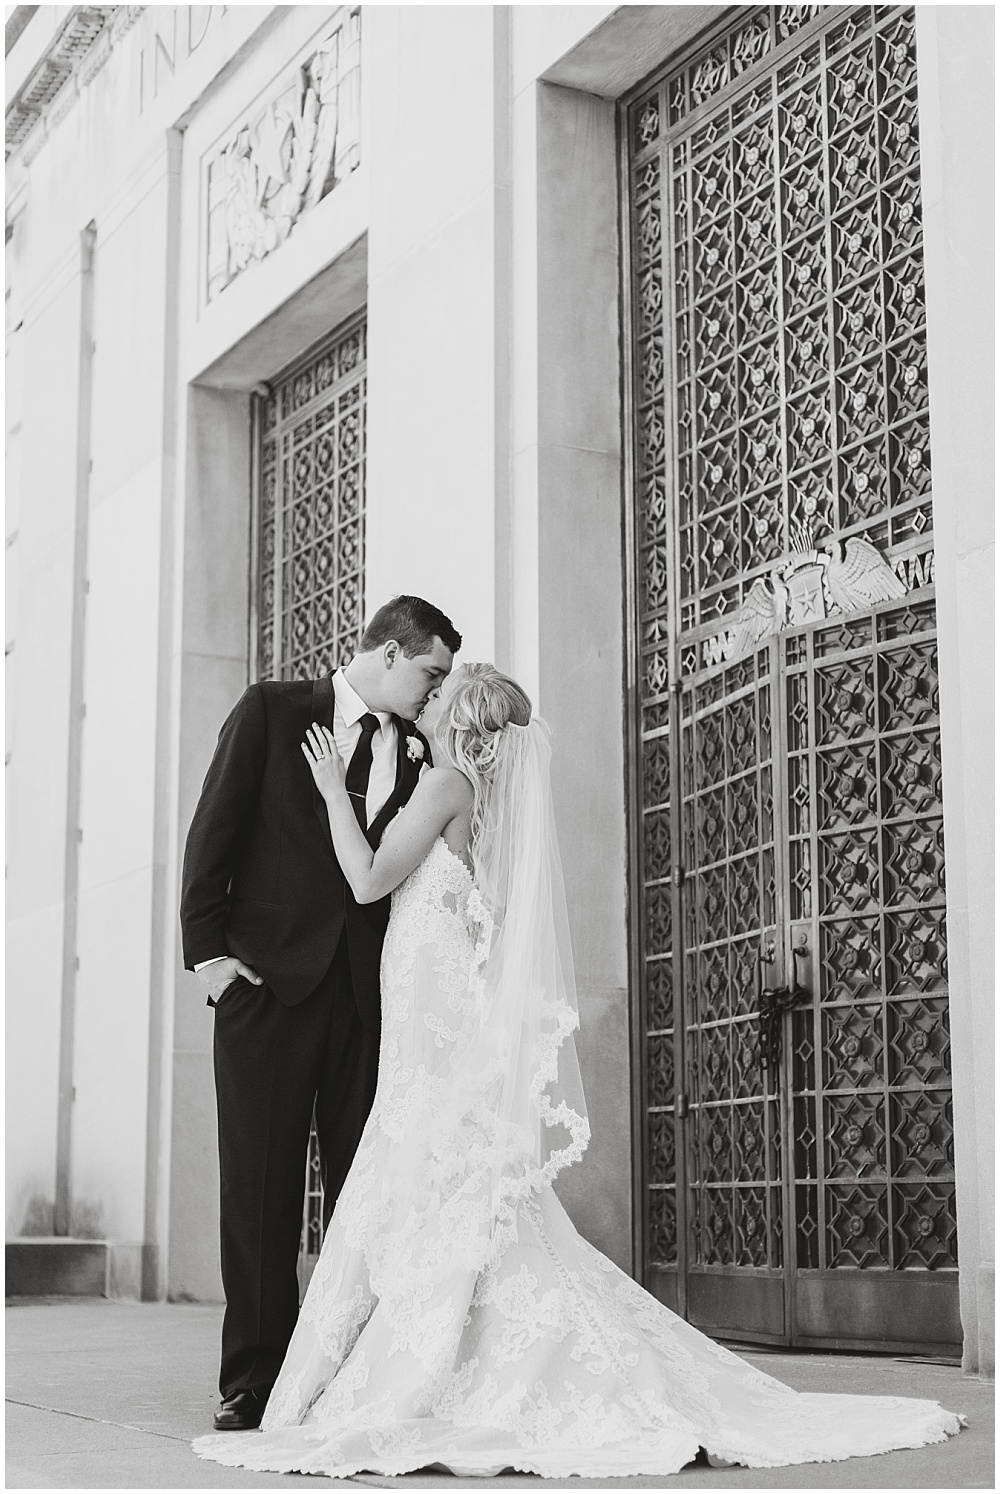 Bride and Groom outdoor black and white portrait | Downtown Indianapolis Wedding by Gabrielle Cheikh Photography & Jessica Dum Wedding Coordination